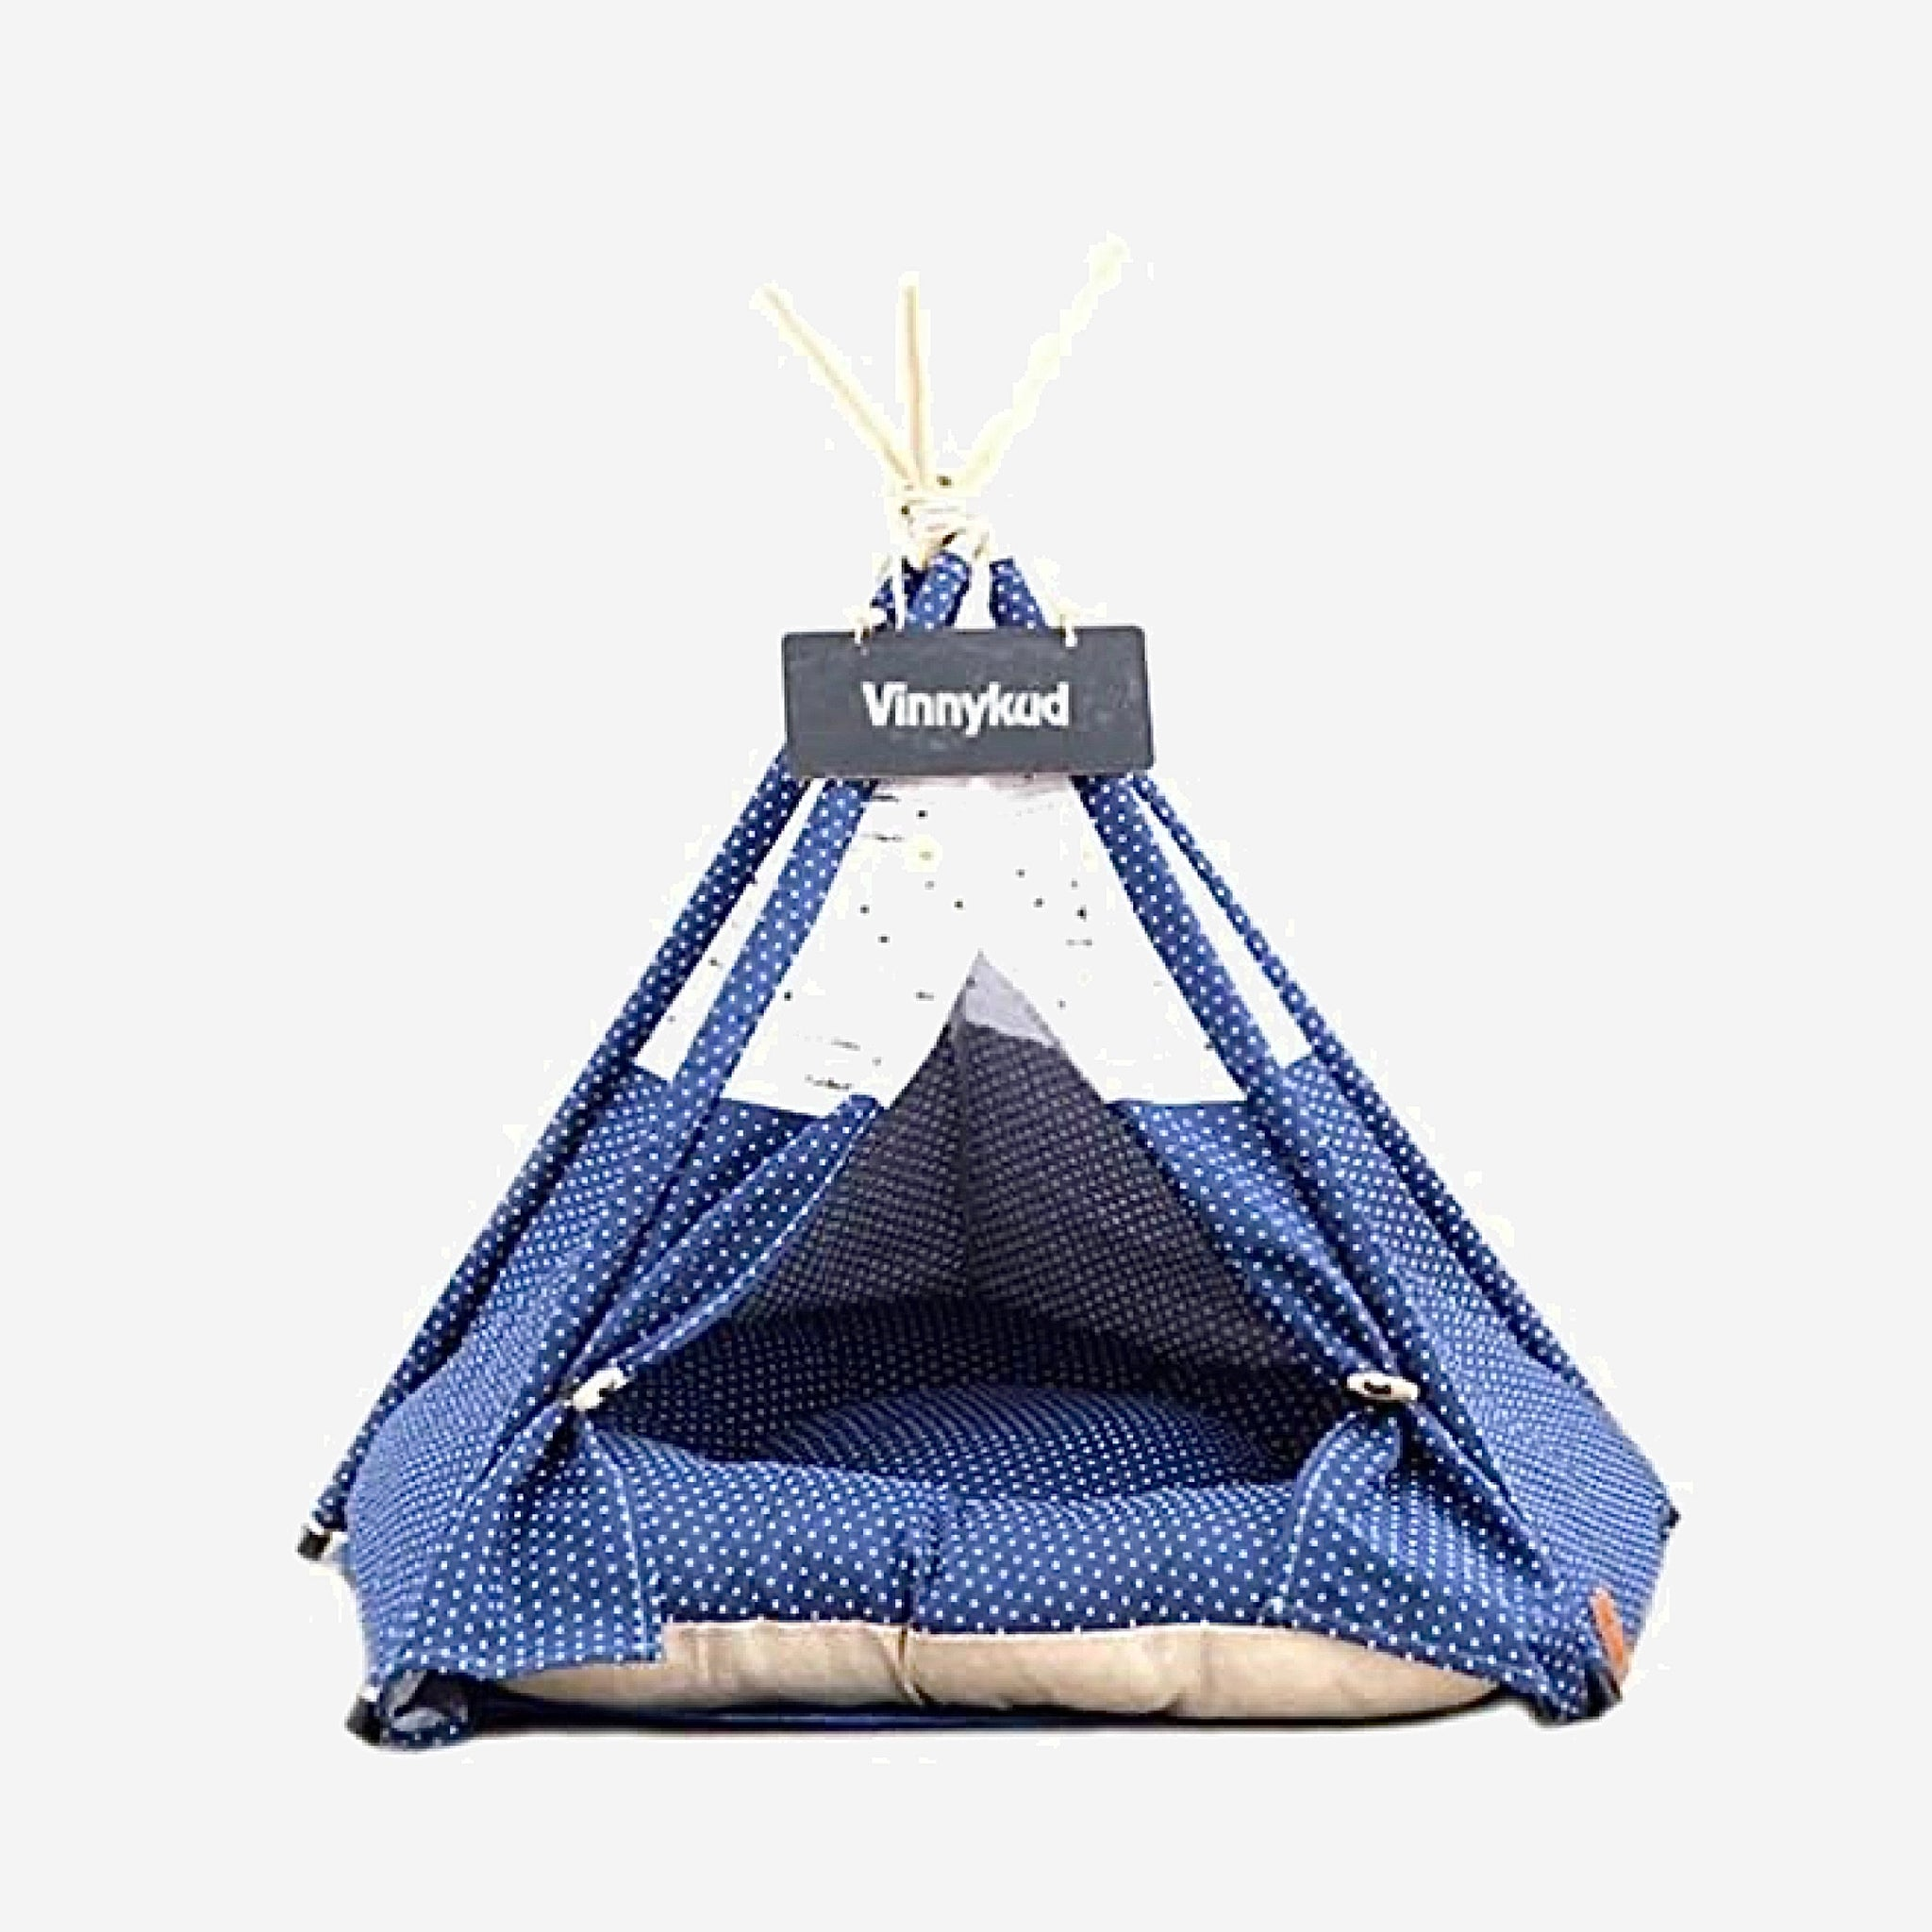 Teepee Pet Tent with Thick Cushion   House Cat Bed Portable for Dog Puppy Excursion Outdoor Indoor use Trend Navy Blue Polka Dot